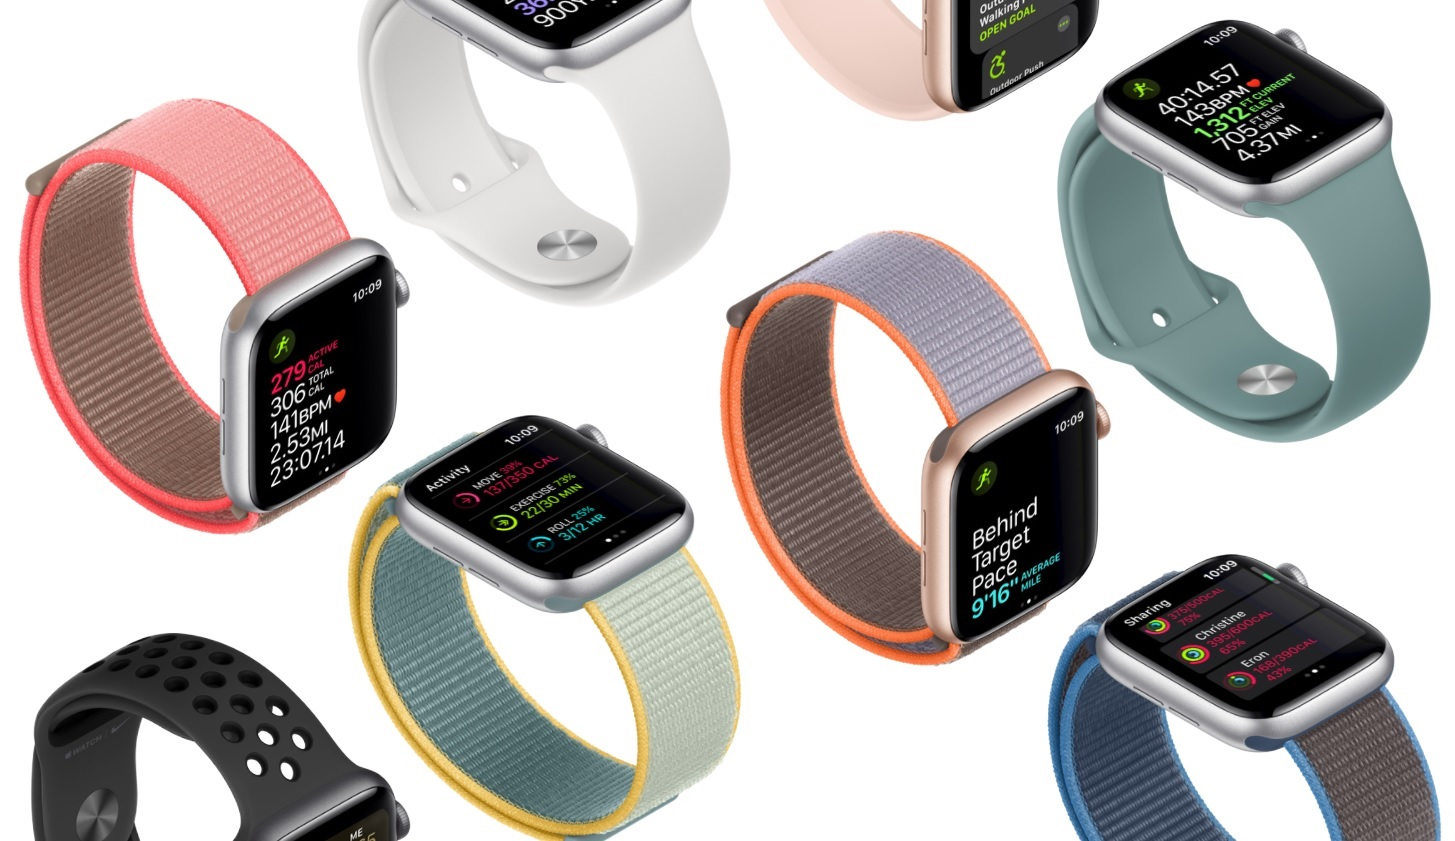 Amazon S Black Friday Apple Watch Deals Are Already Starting To Sell Out Bgr